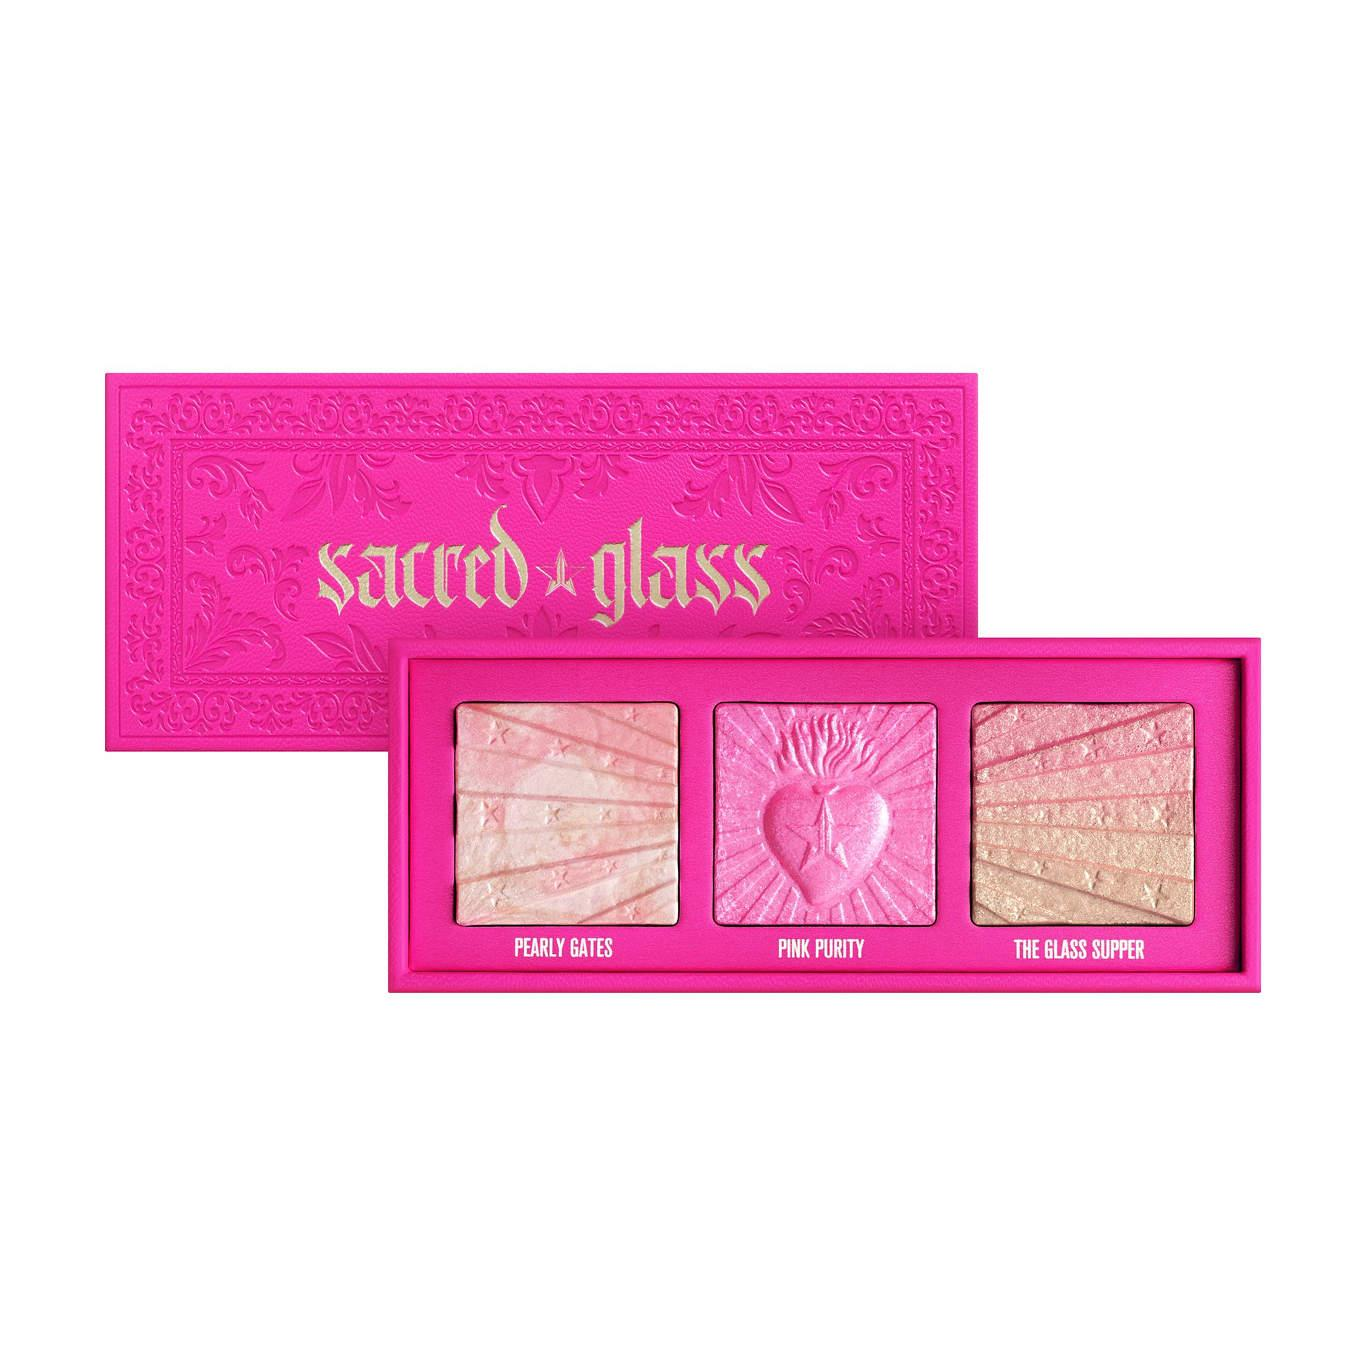 Jeffree Star Cosmetics Pink Religion Collection Sacred Glass Extreme Frost Palette